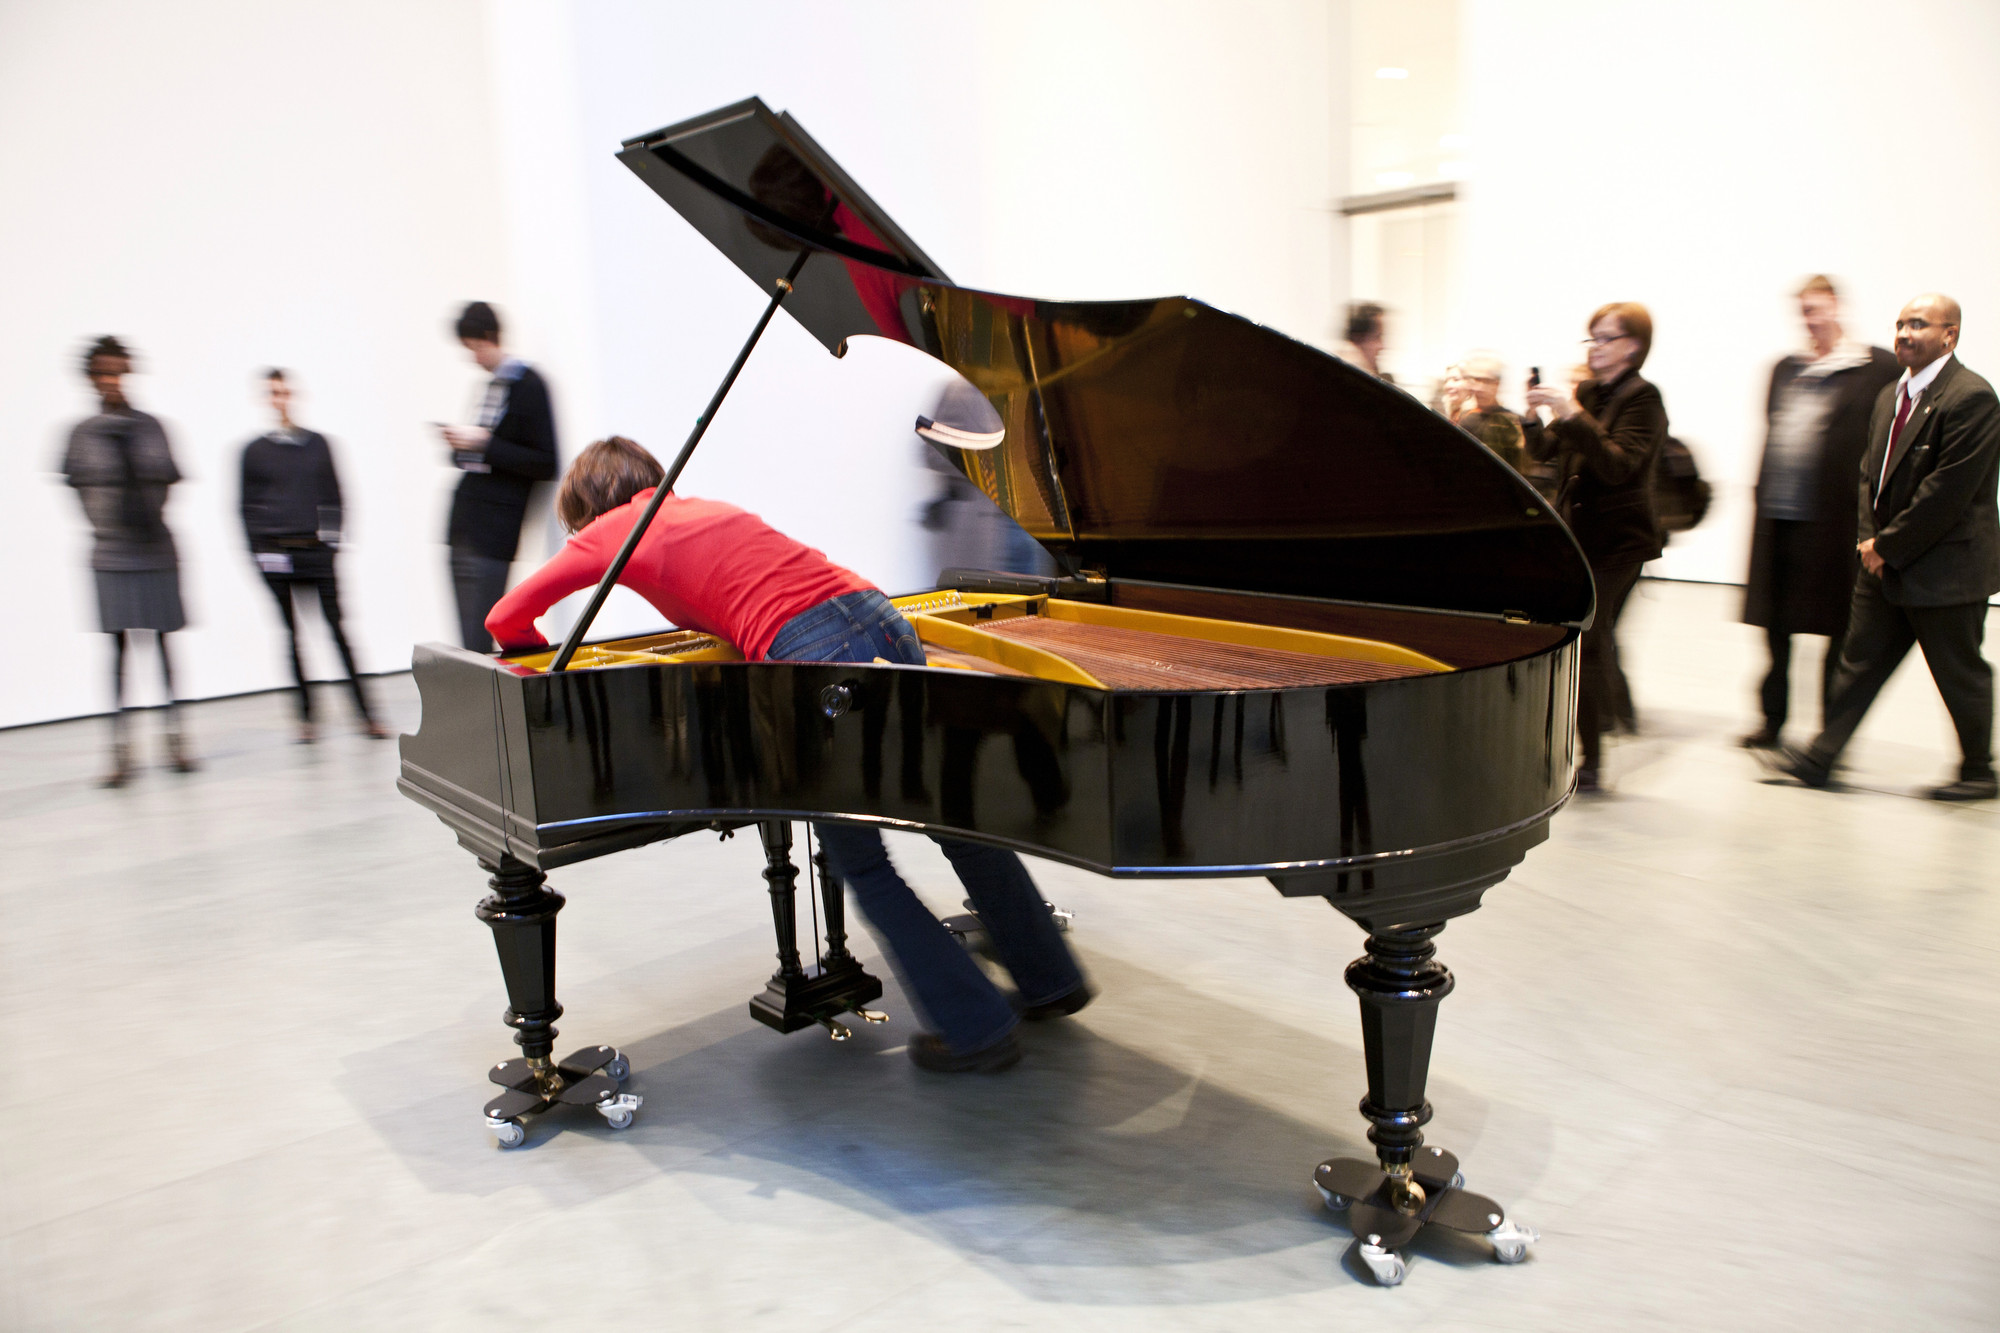 "Jennifer Allora and Guillermo Calzadilla. Stop, Repair, Prepare: Variations on ""Ode to Joy"" for a Prepared Piano. 2008. Prepared Bechstein piano, pianist (Terezija Cukrov shown). Piano: 40 x 67 x 84"" (101.6 x 170.2 x 213.4 cm). The Museum of Modern Art. Gift of the Julia Stoschek Foundation, Düsseldorf. © 2011 Yi-Chun Wu/The Museum of Modern Art"